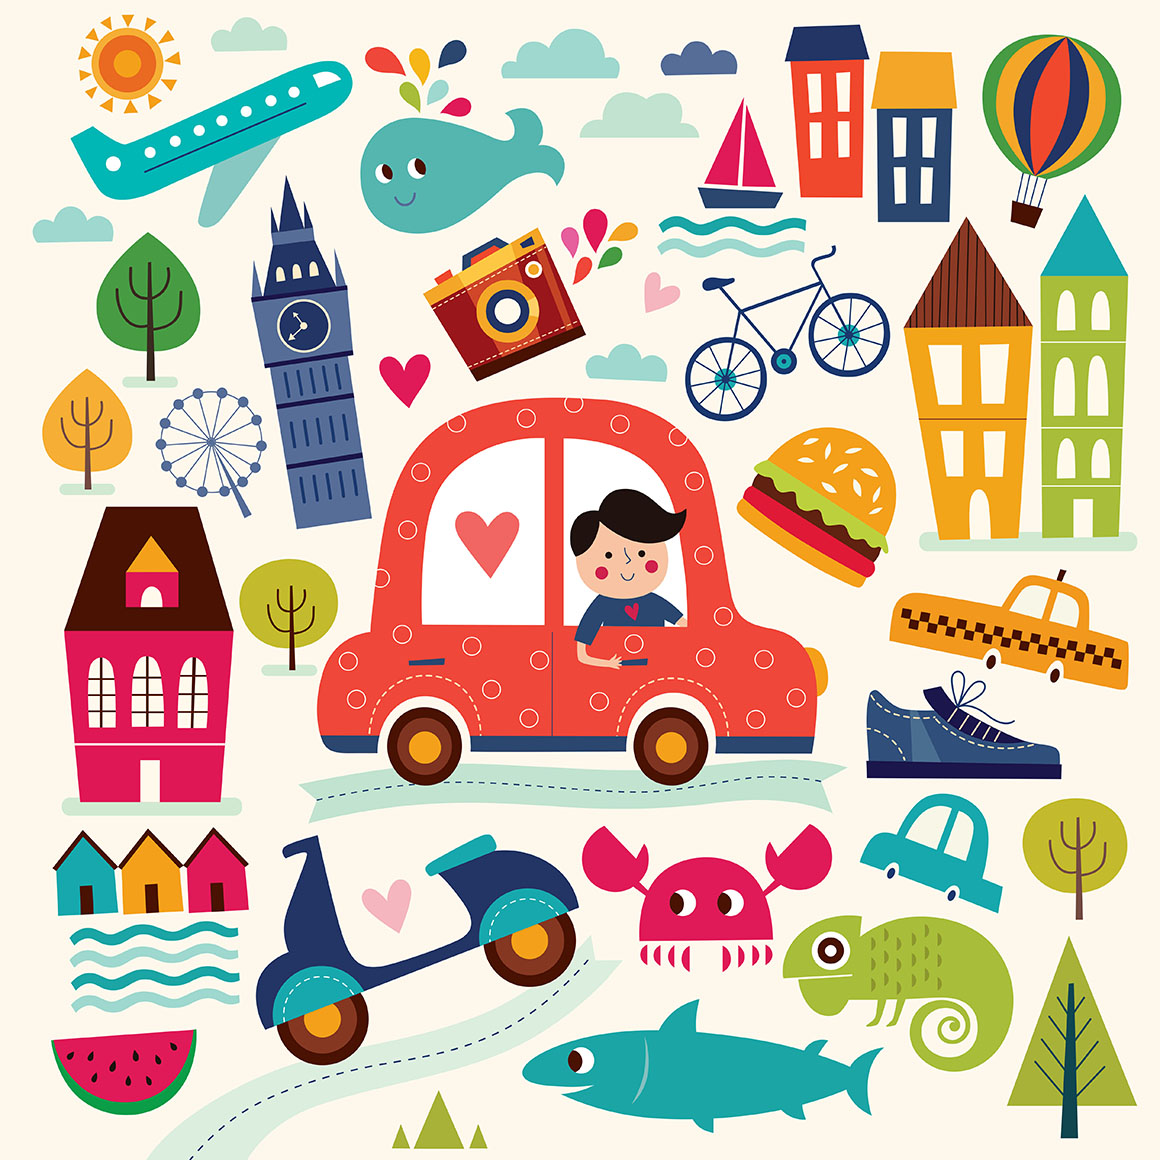 Illustration with summer symbols. Summer travel. Pattern with man, car, sailboat, motorbike, trees, houses. Cartoon pattern